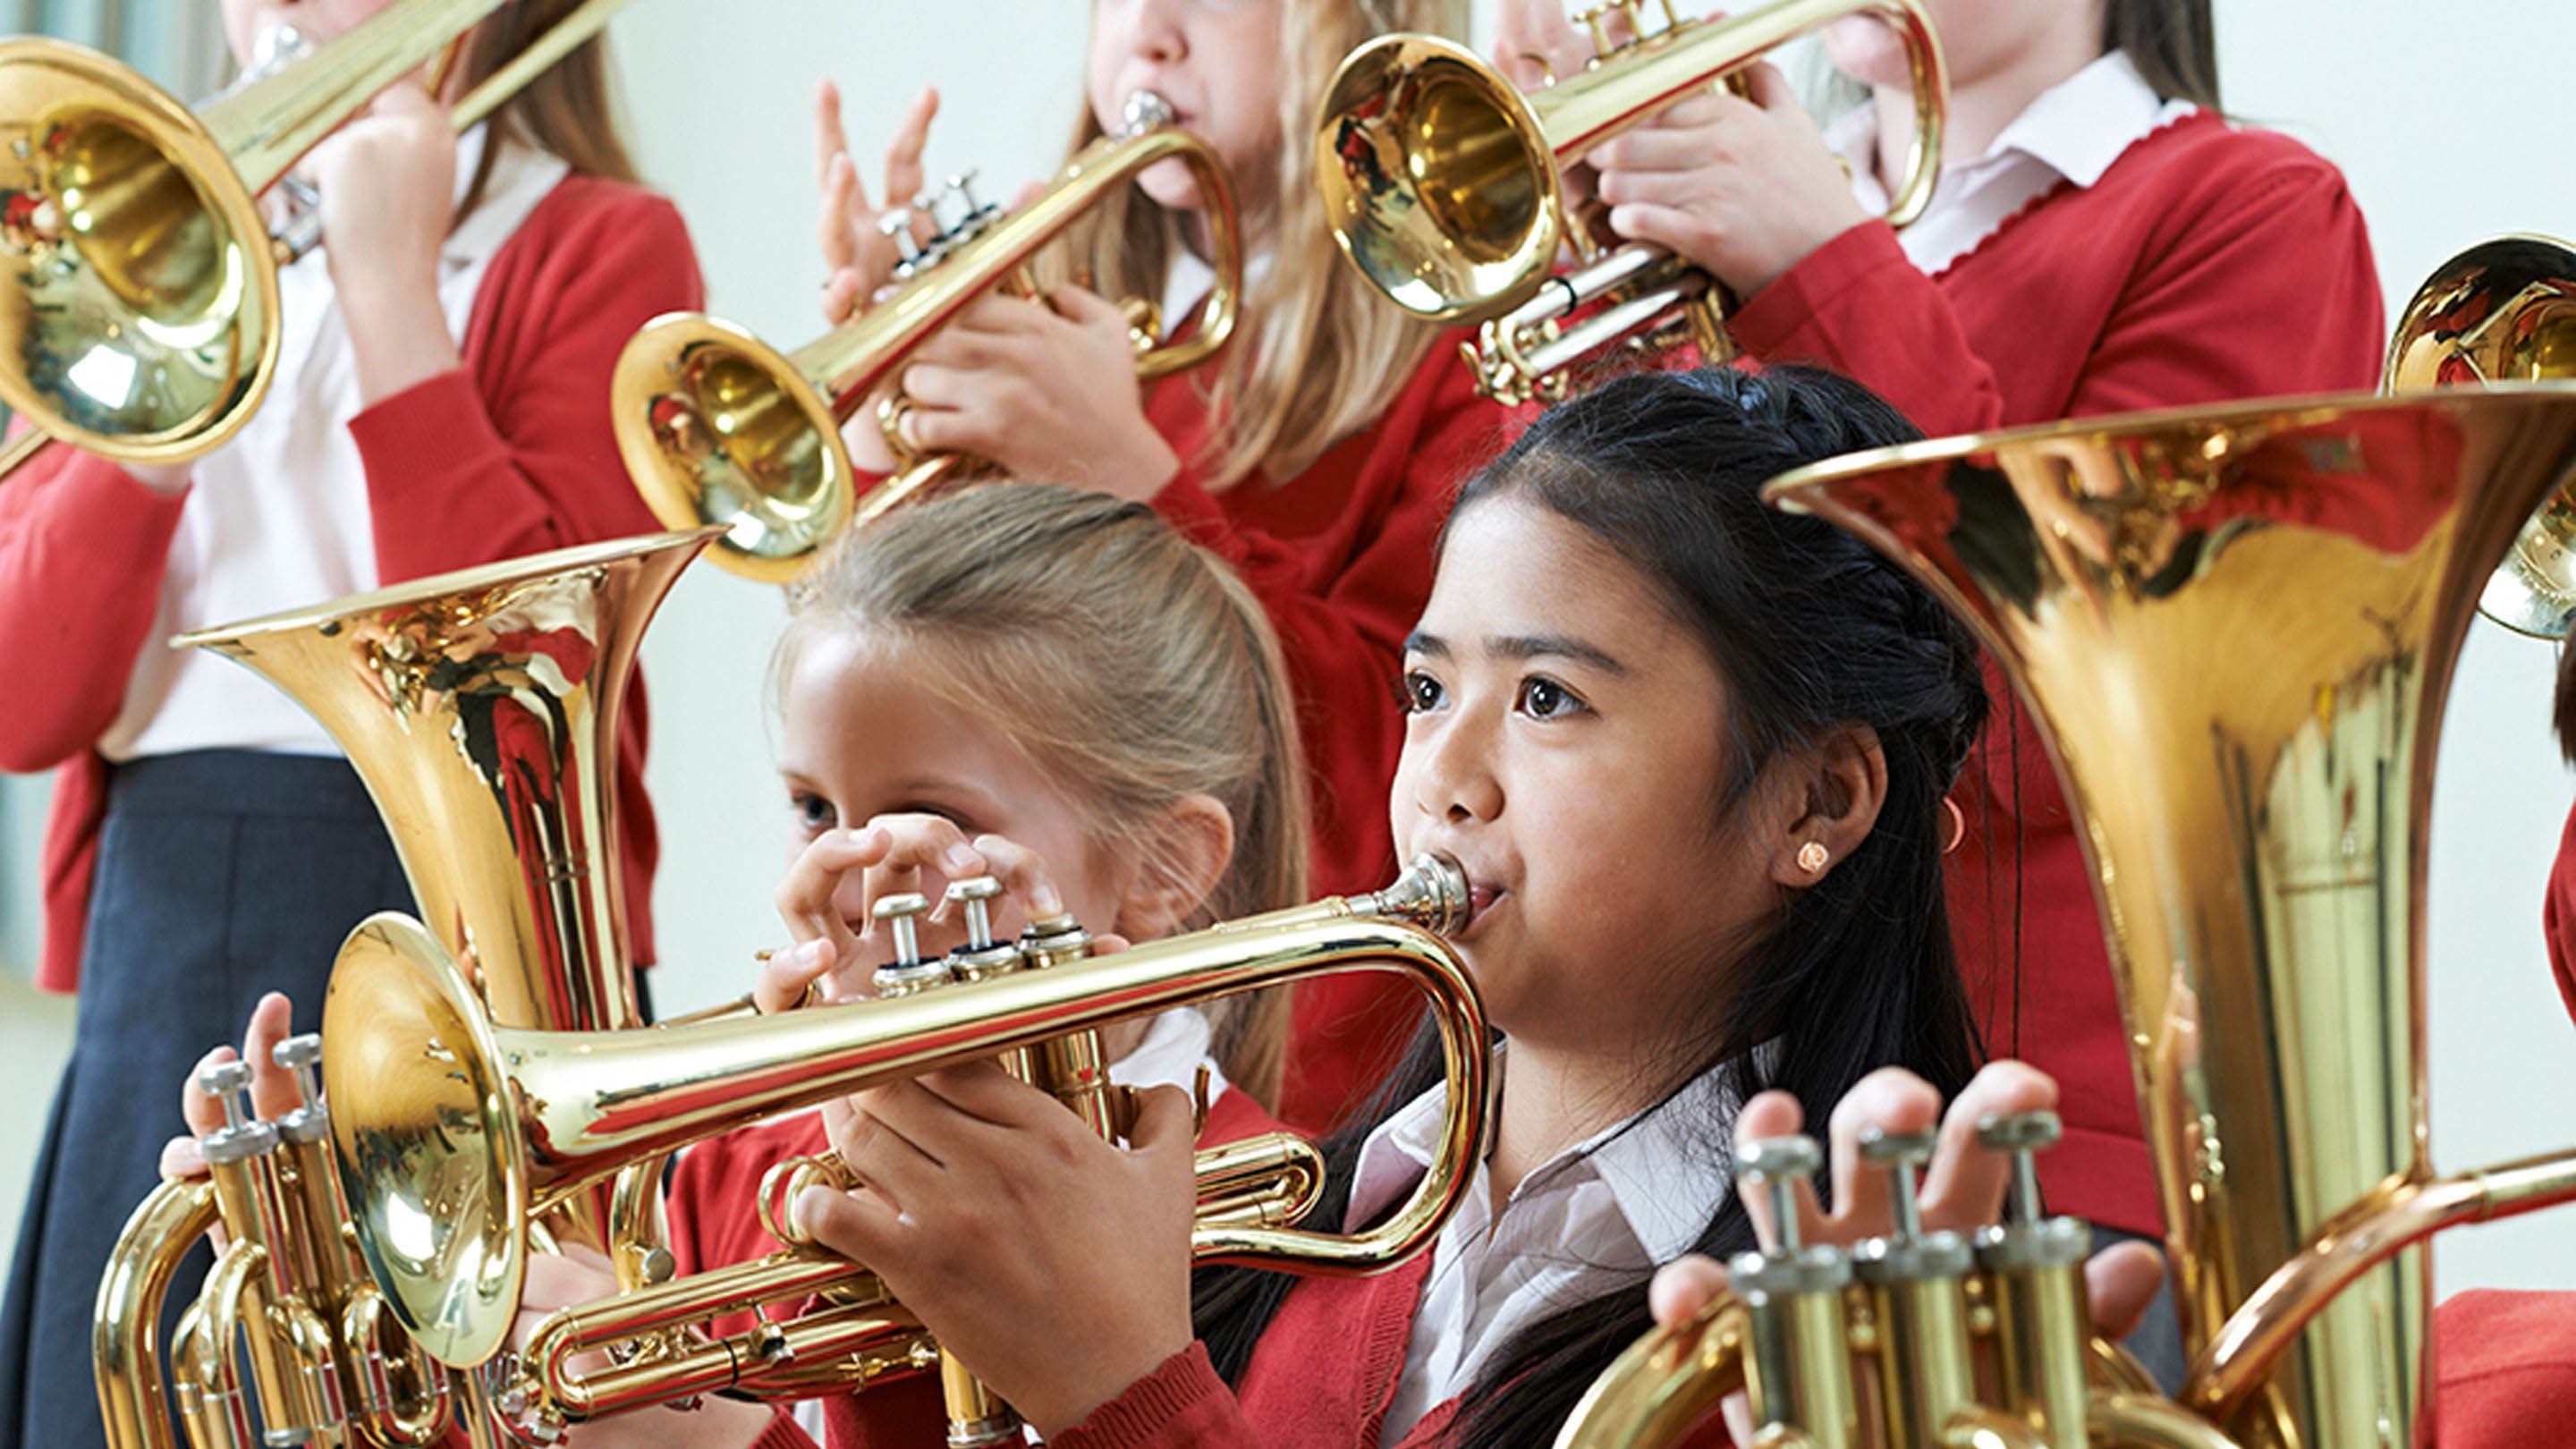 Six young girls in uniform -- a blue skirt, white button up shirt, and a red blouse -- are all playing either the tuba or trumpet.